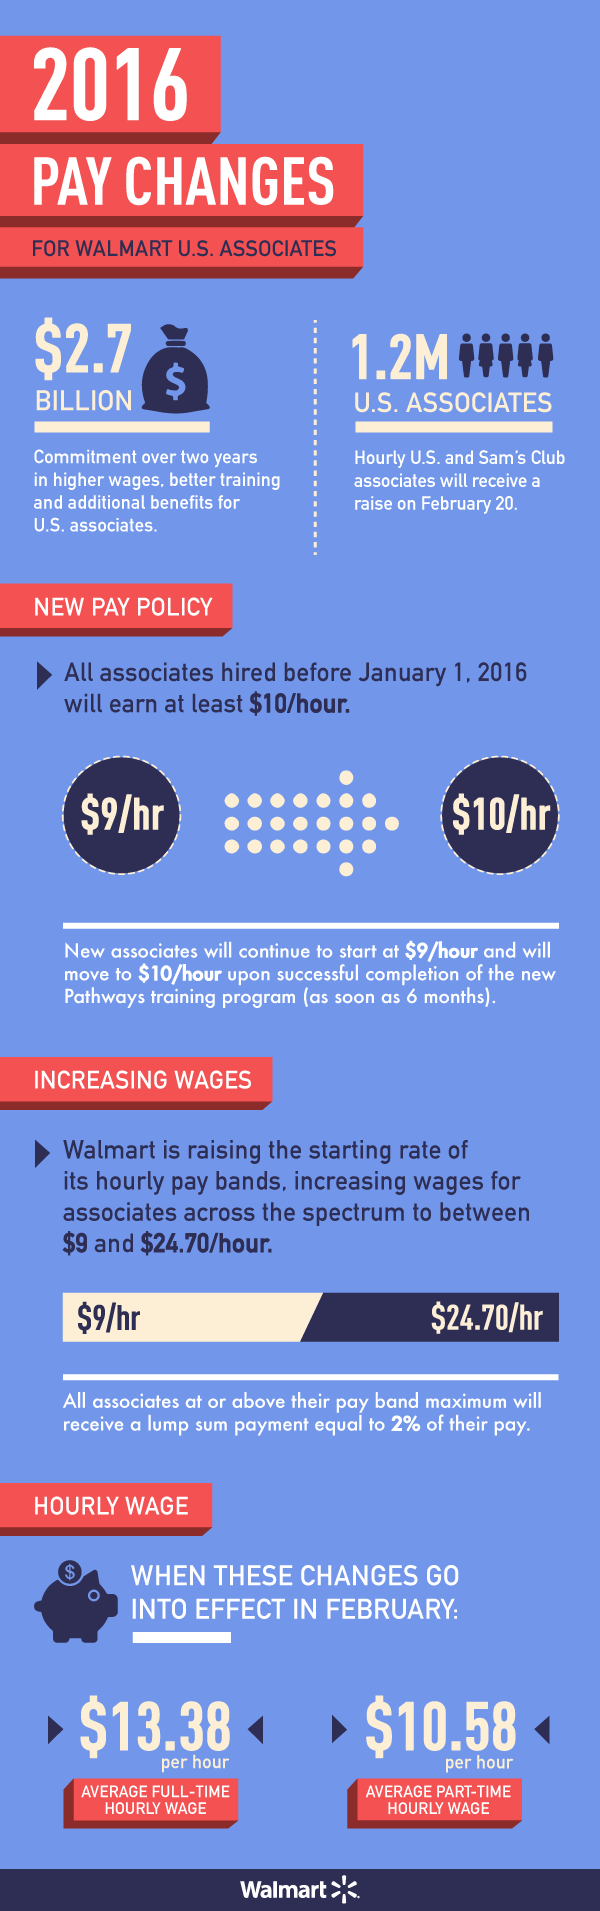 more than one million walmart u s associates receive raises as 2016 pay changes for walmart associates infographic